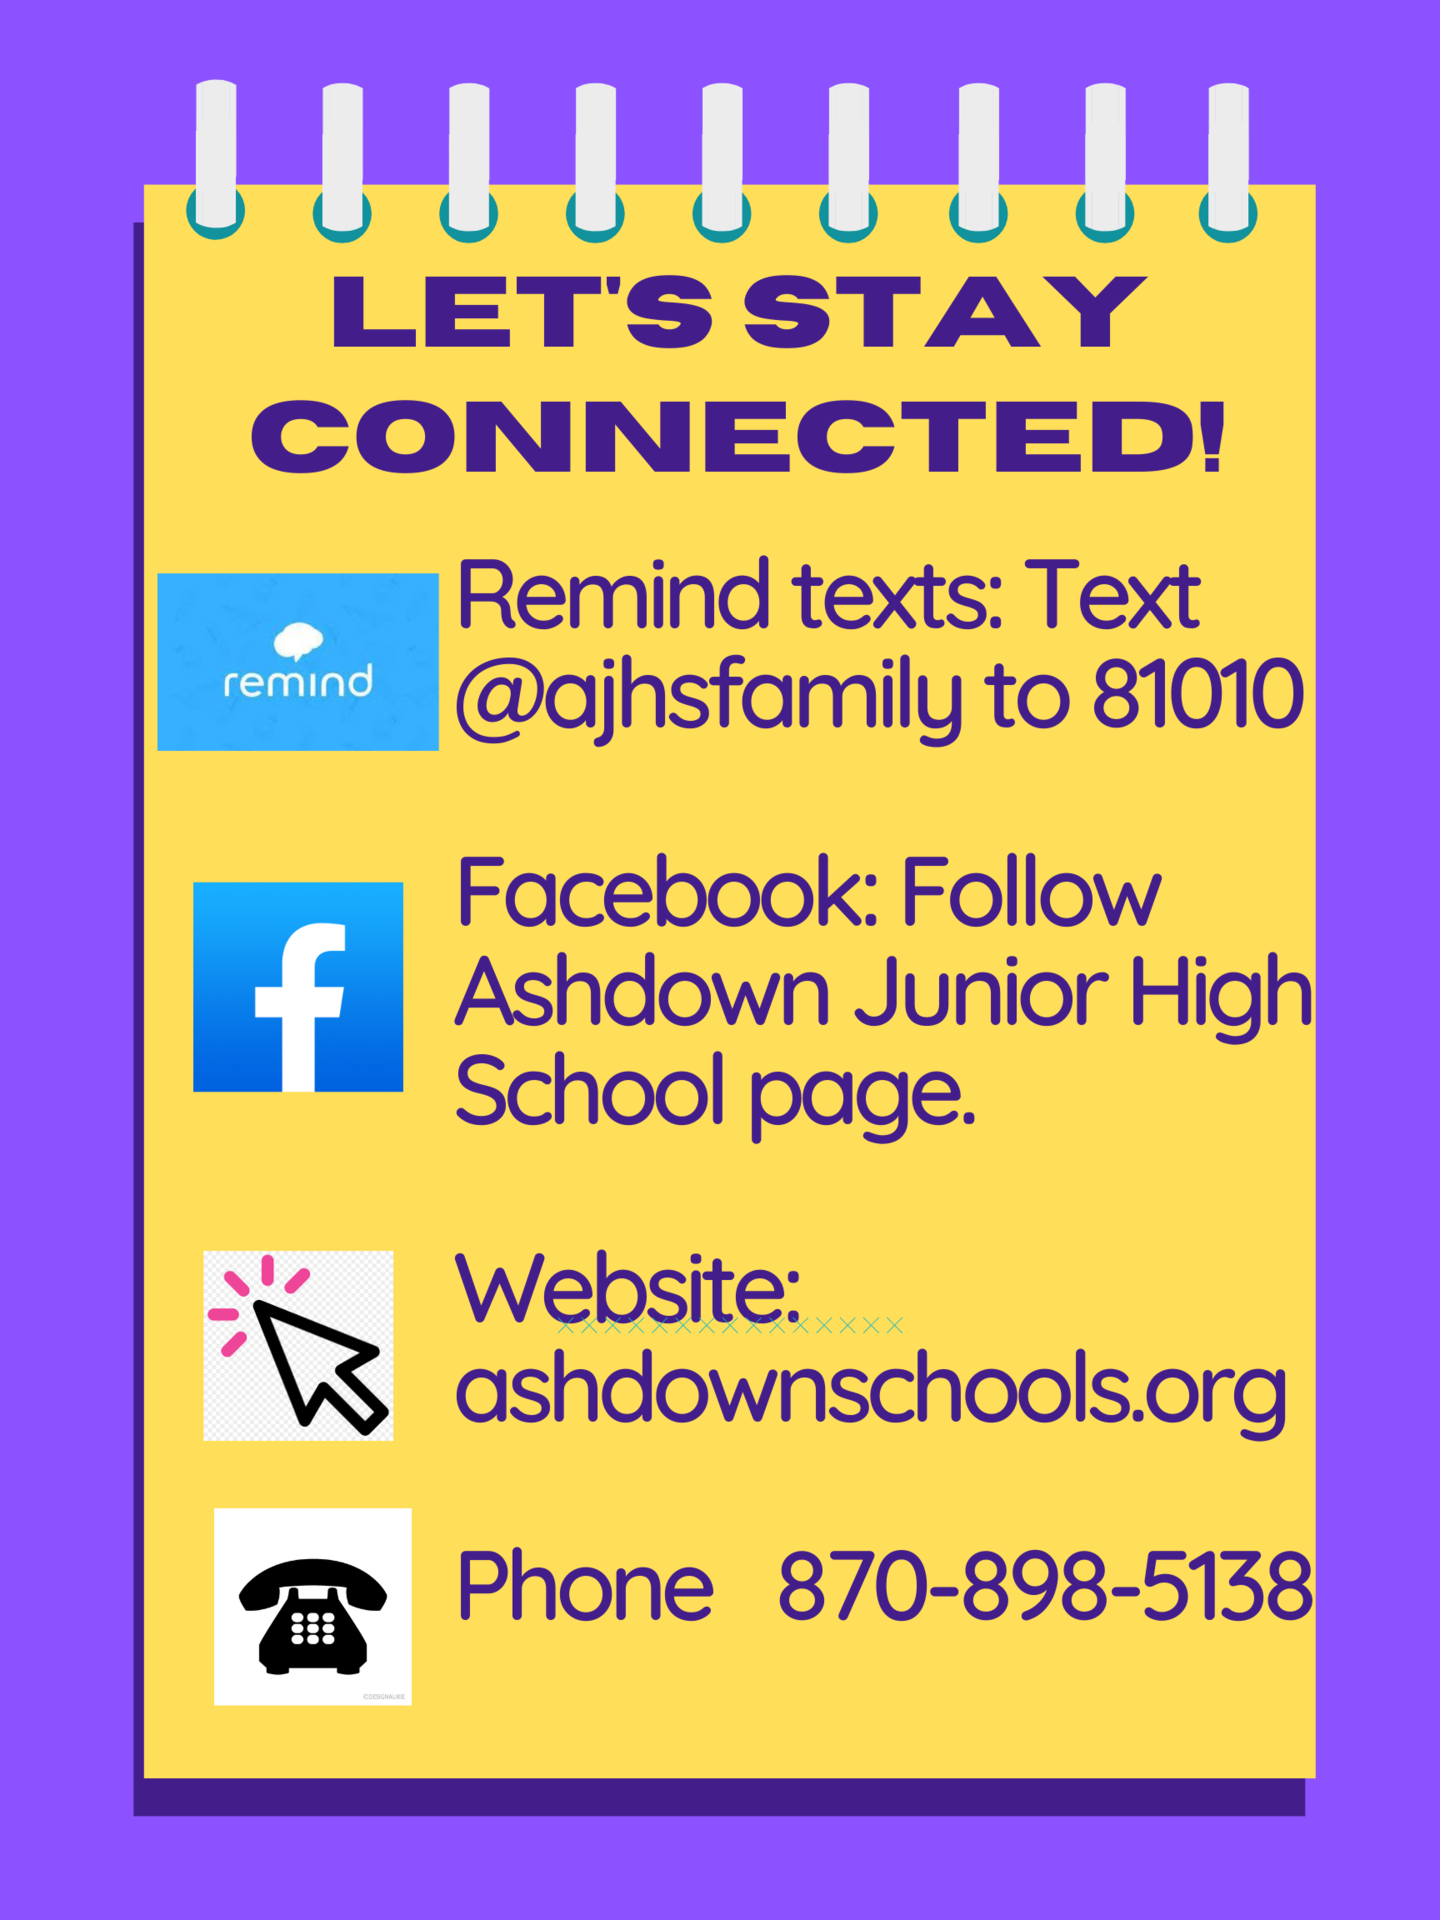 AJHS Stay Connected